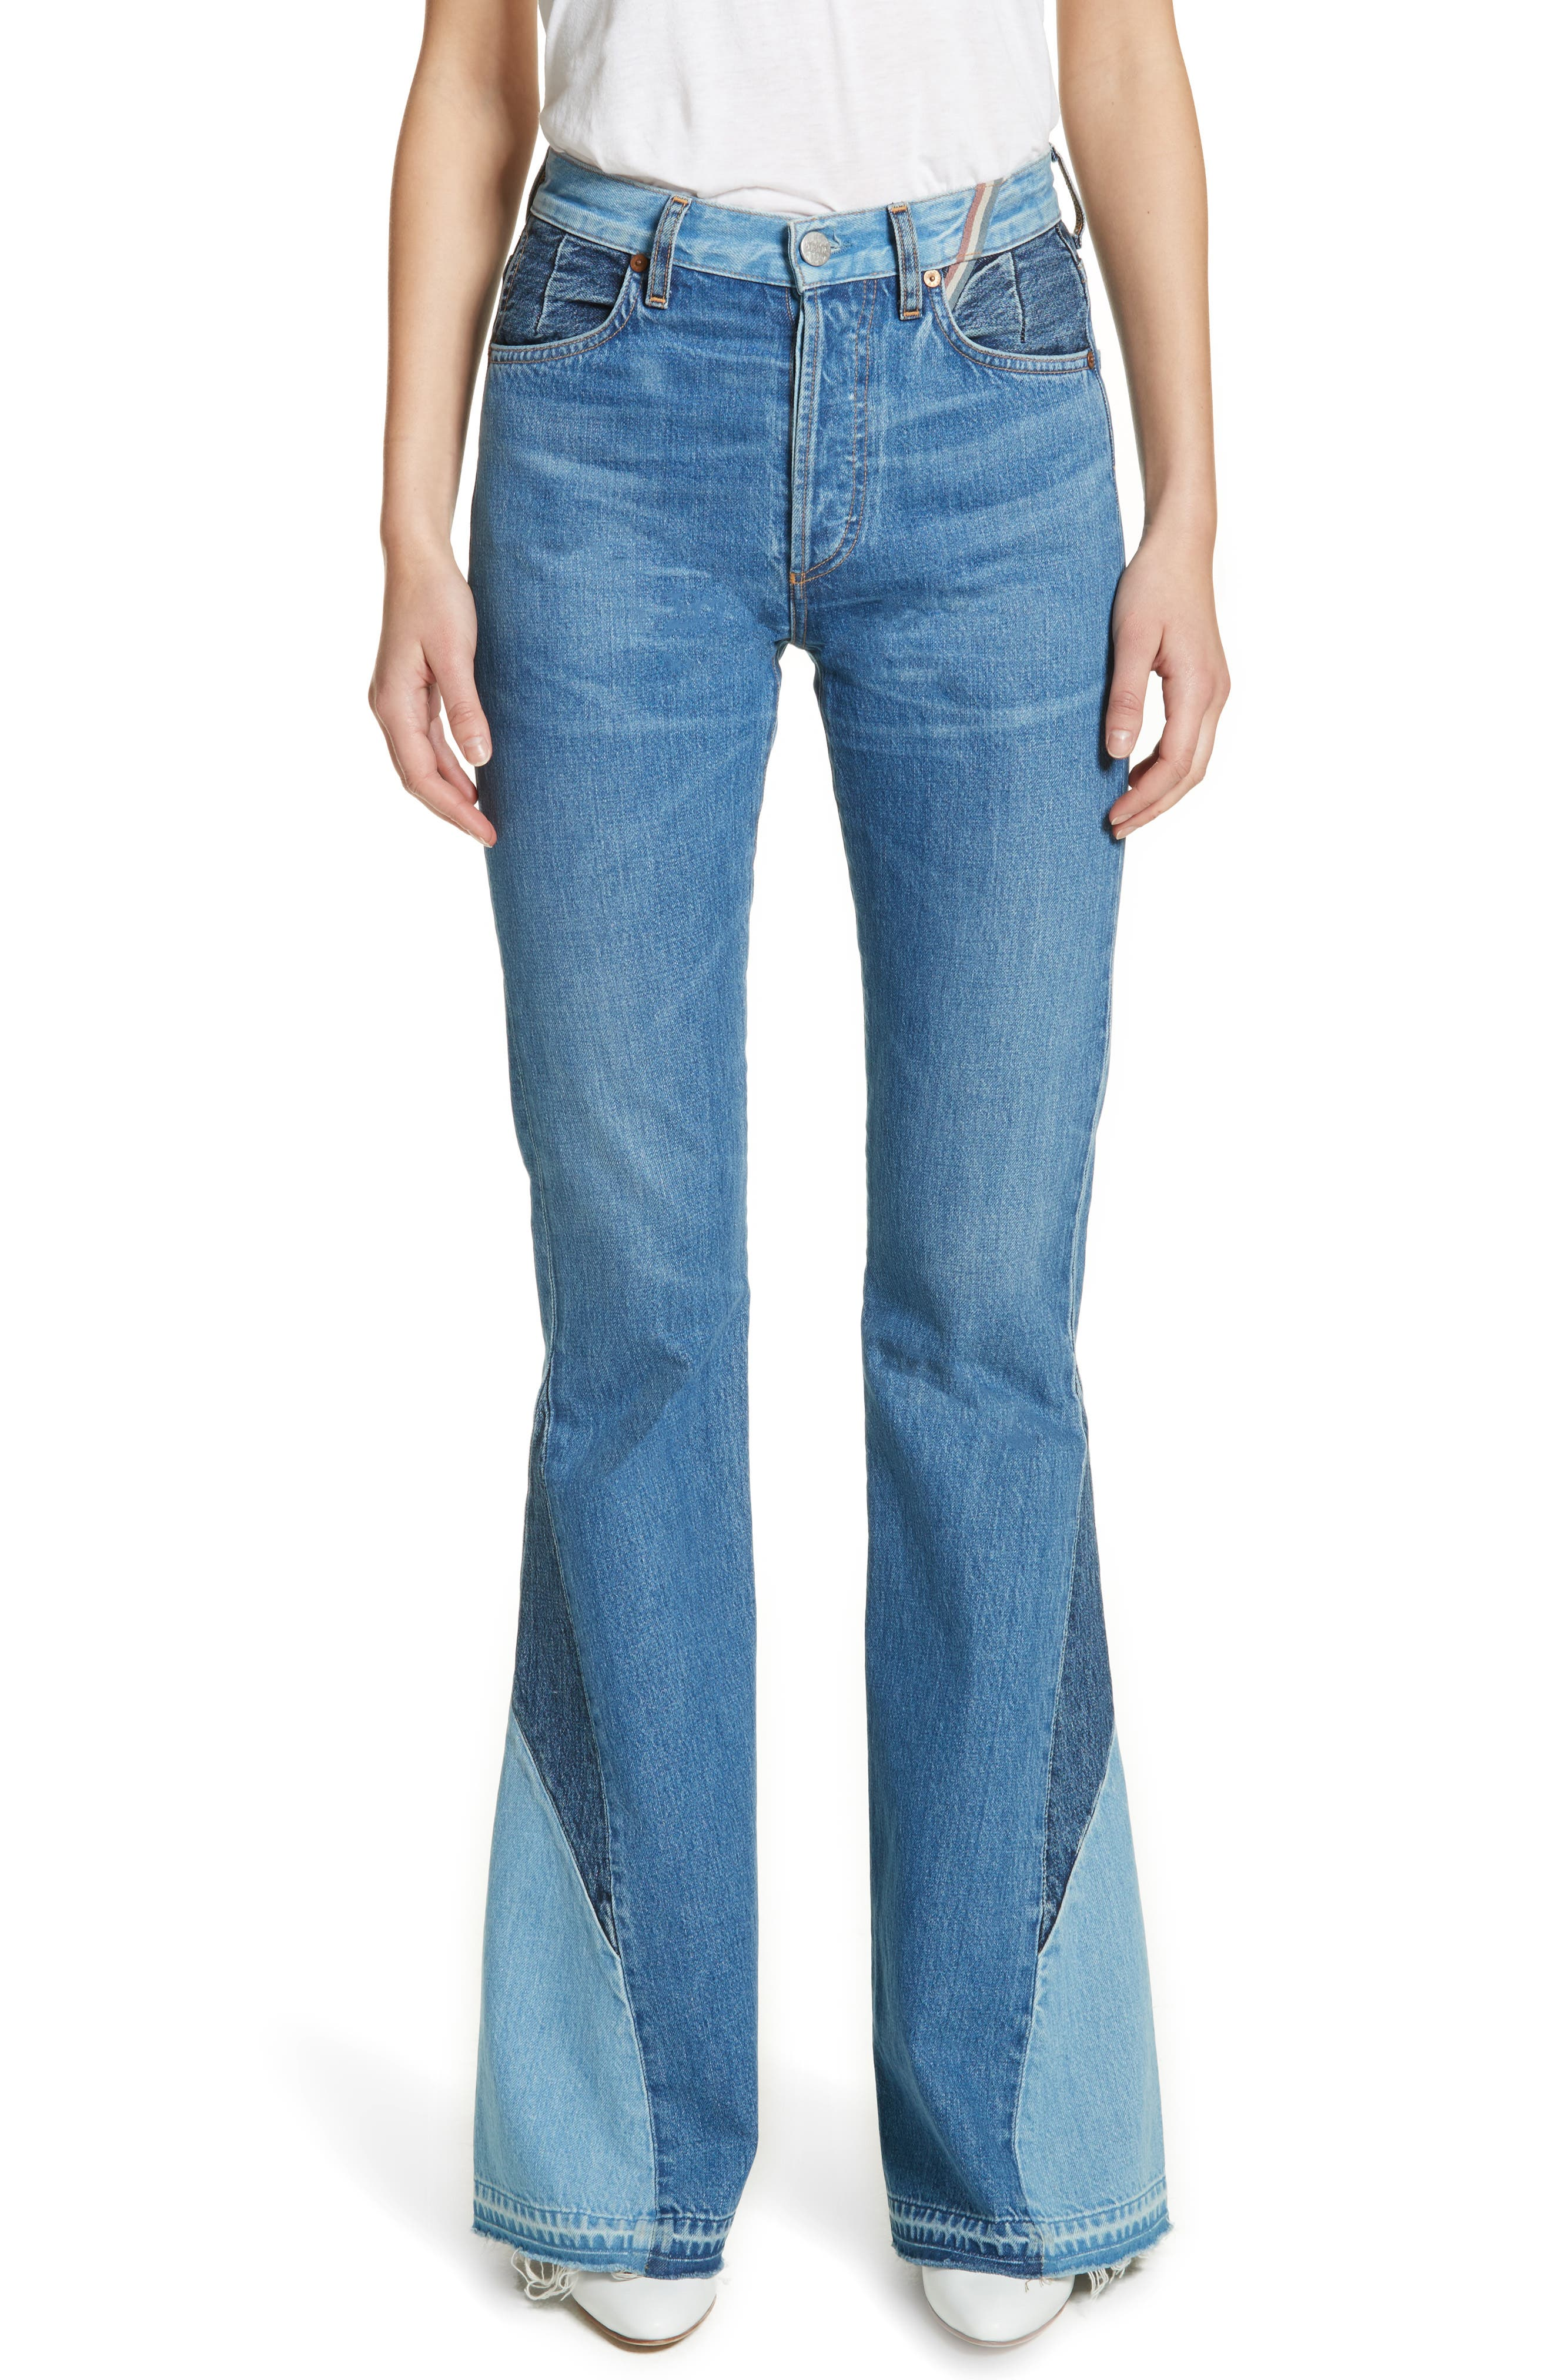 Janis High Rise Flare Jeans,                             Main thumbnail 1, color,                             JAGGER